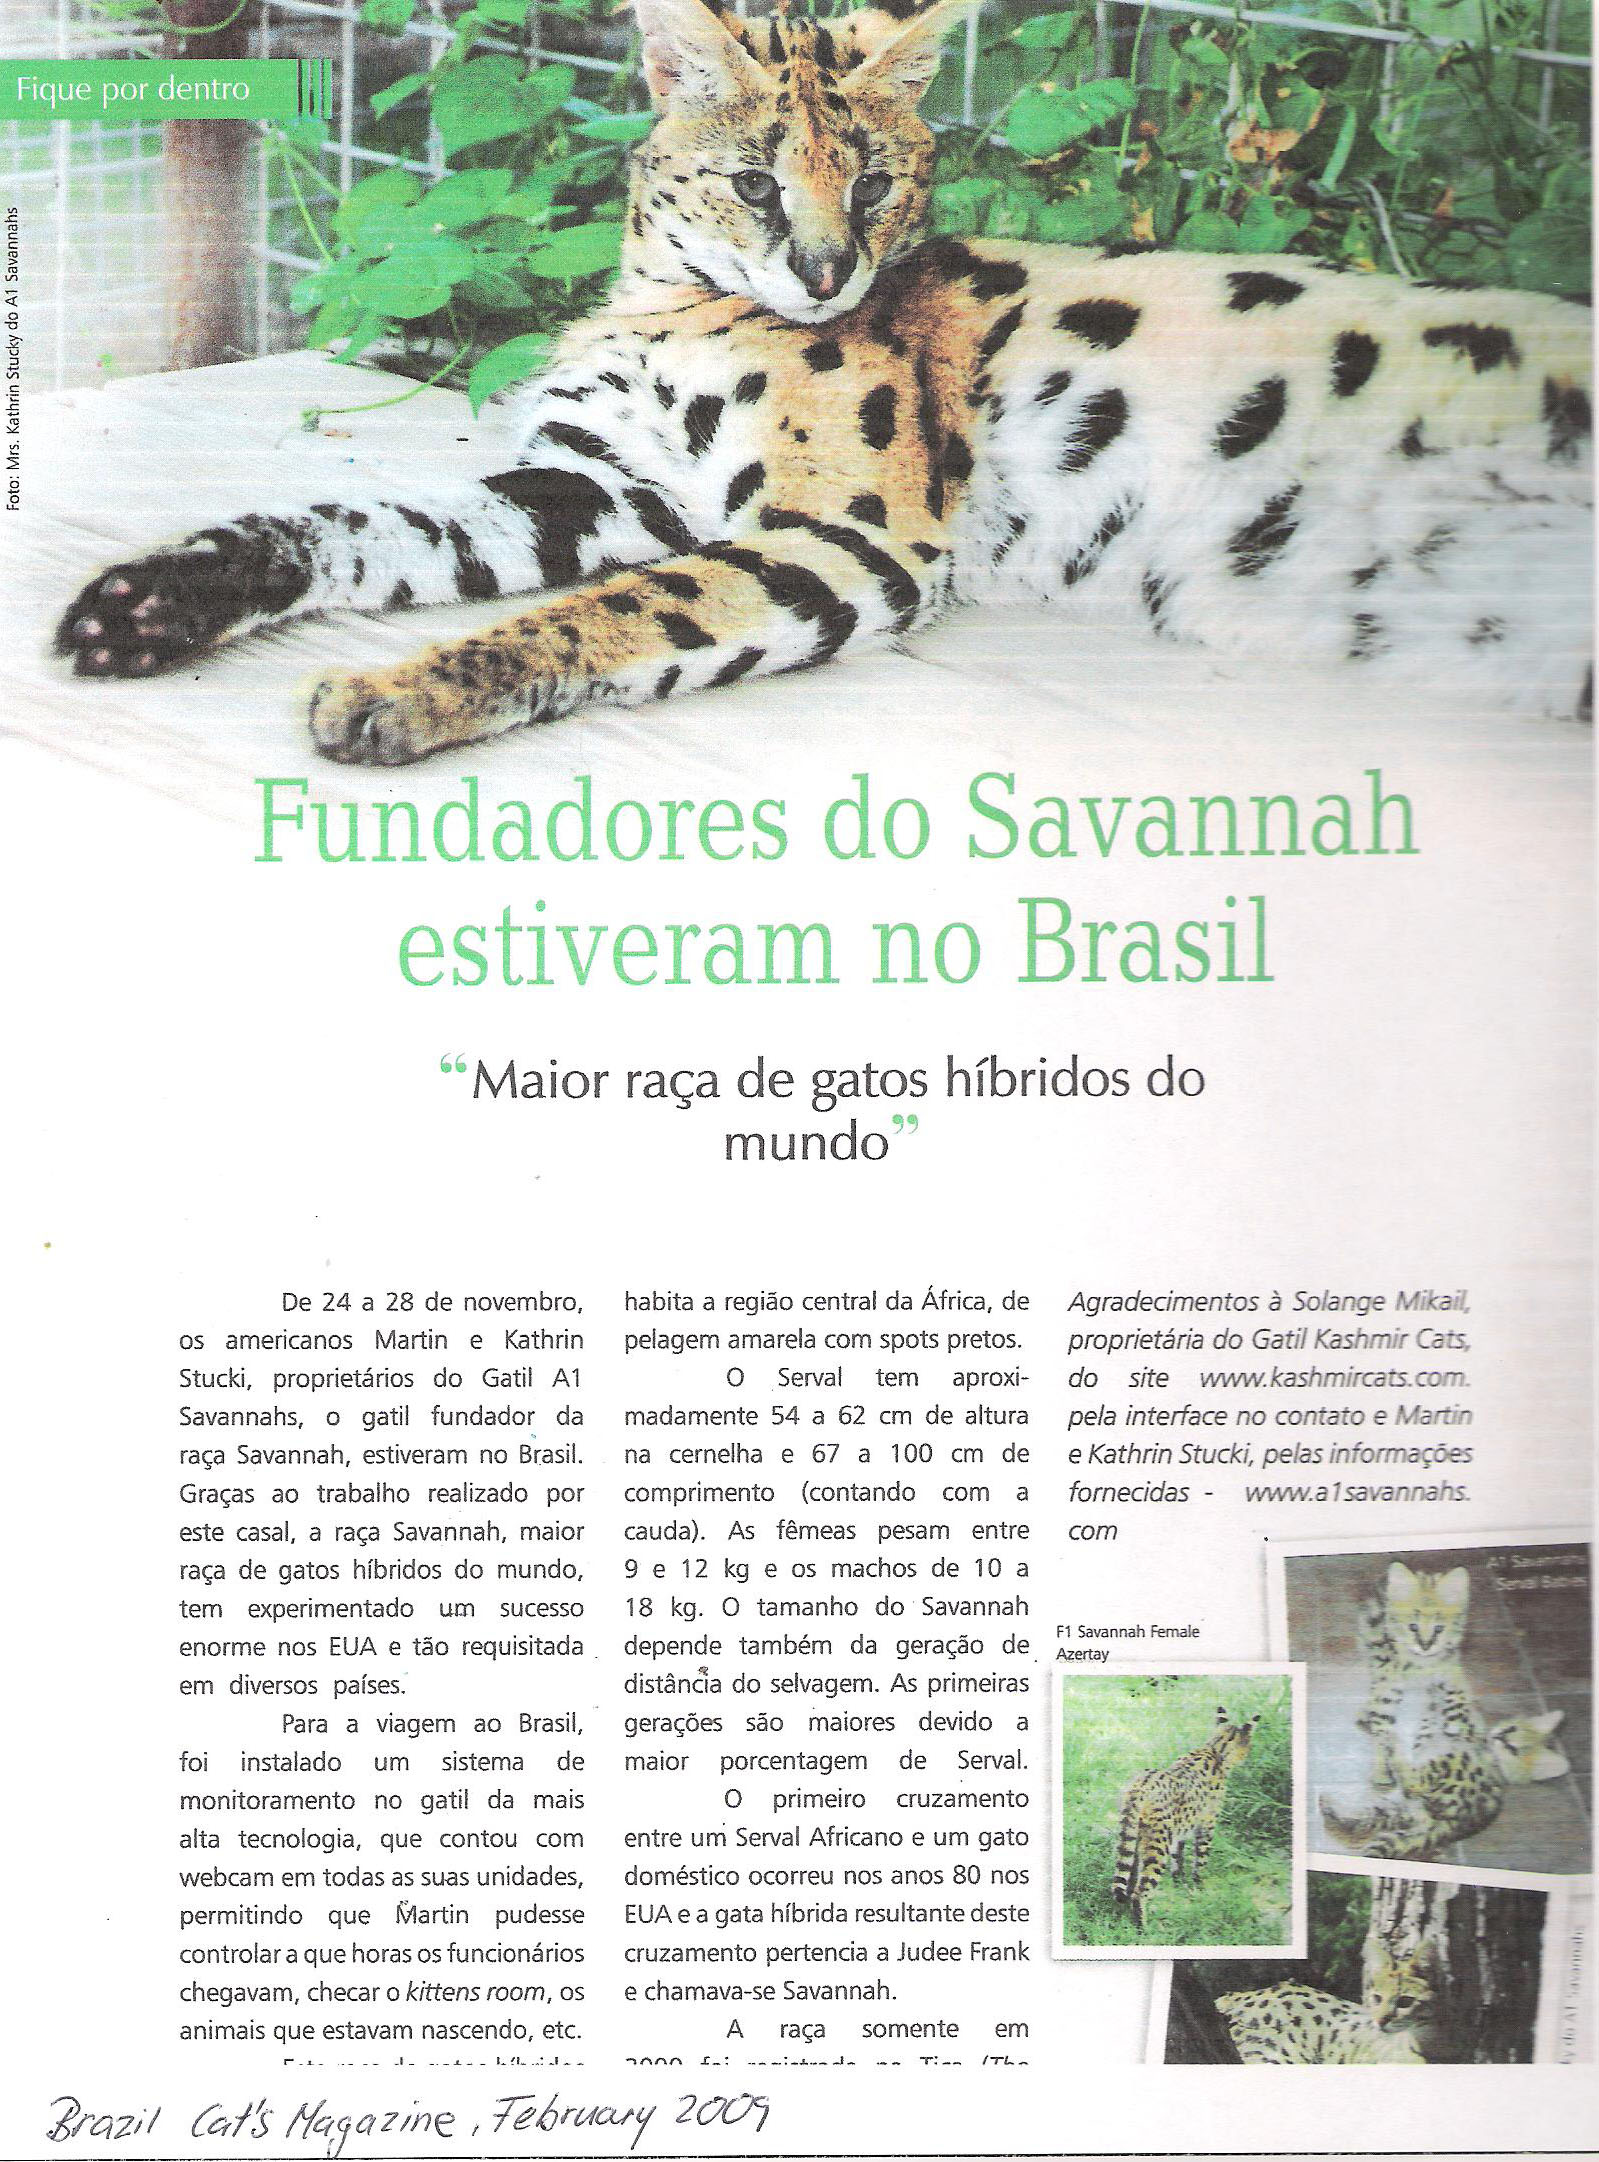 A1Savannahs Brazil Cat Magazine page 1